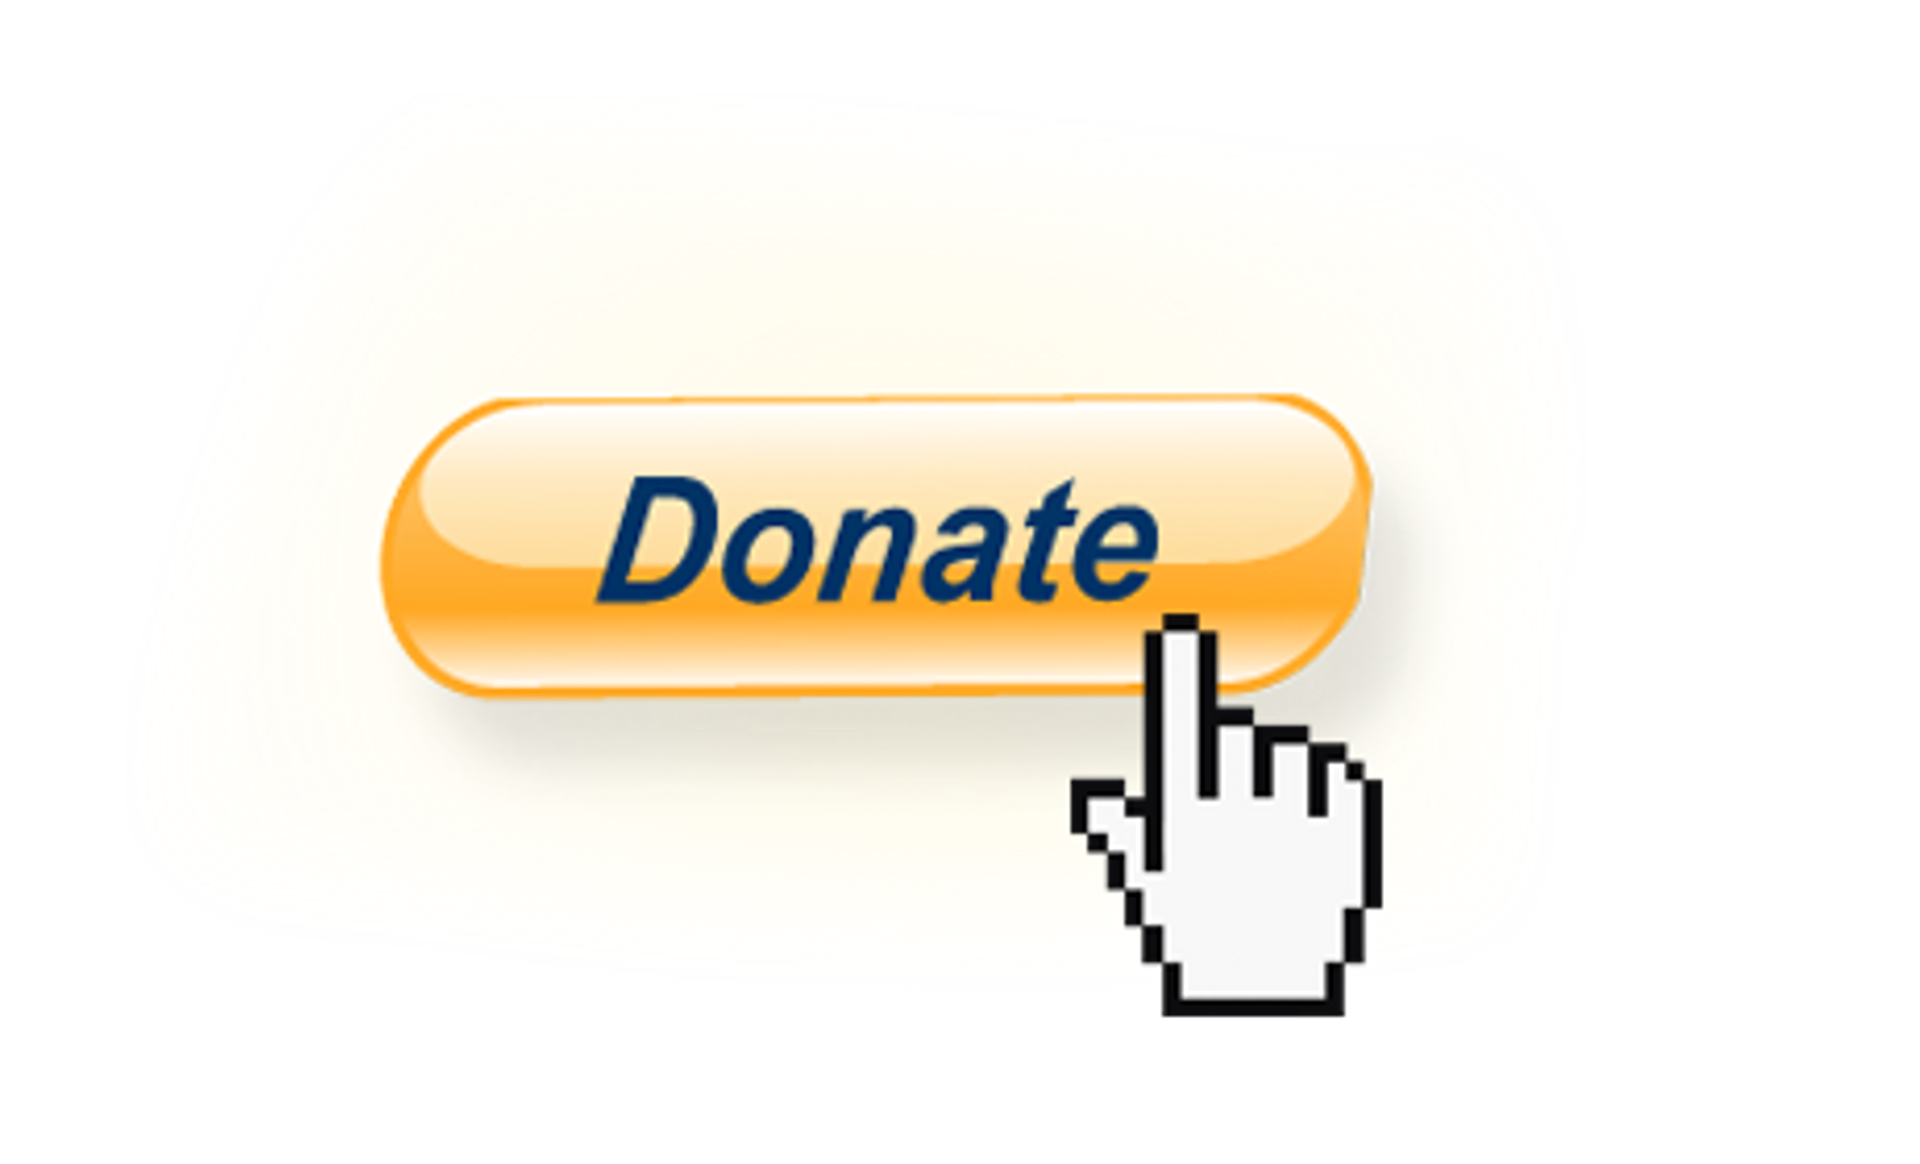 Paypal donate png. Donation foundation non profit